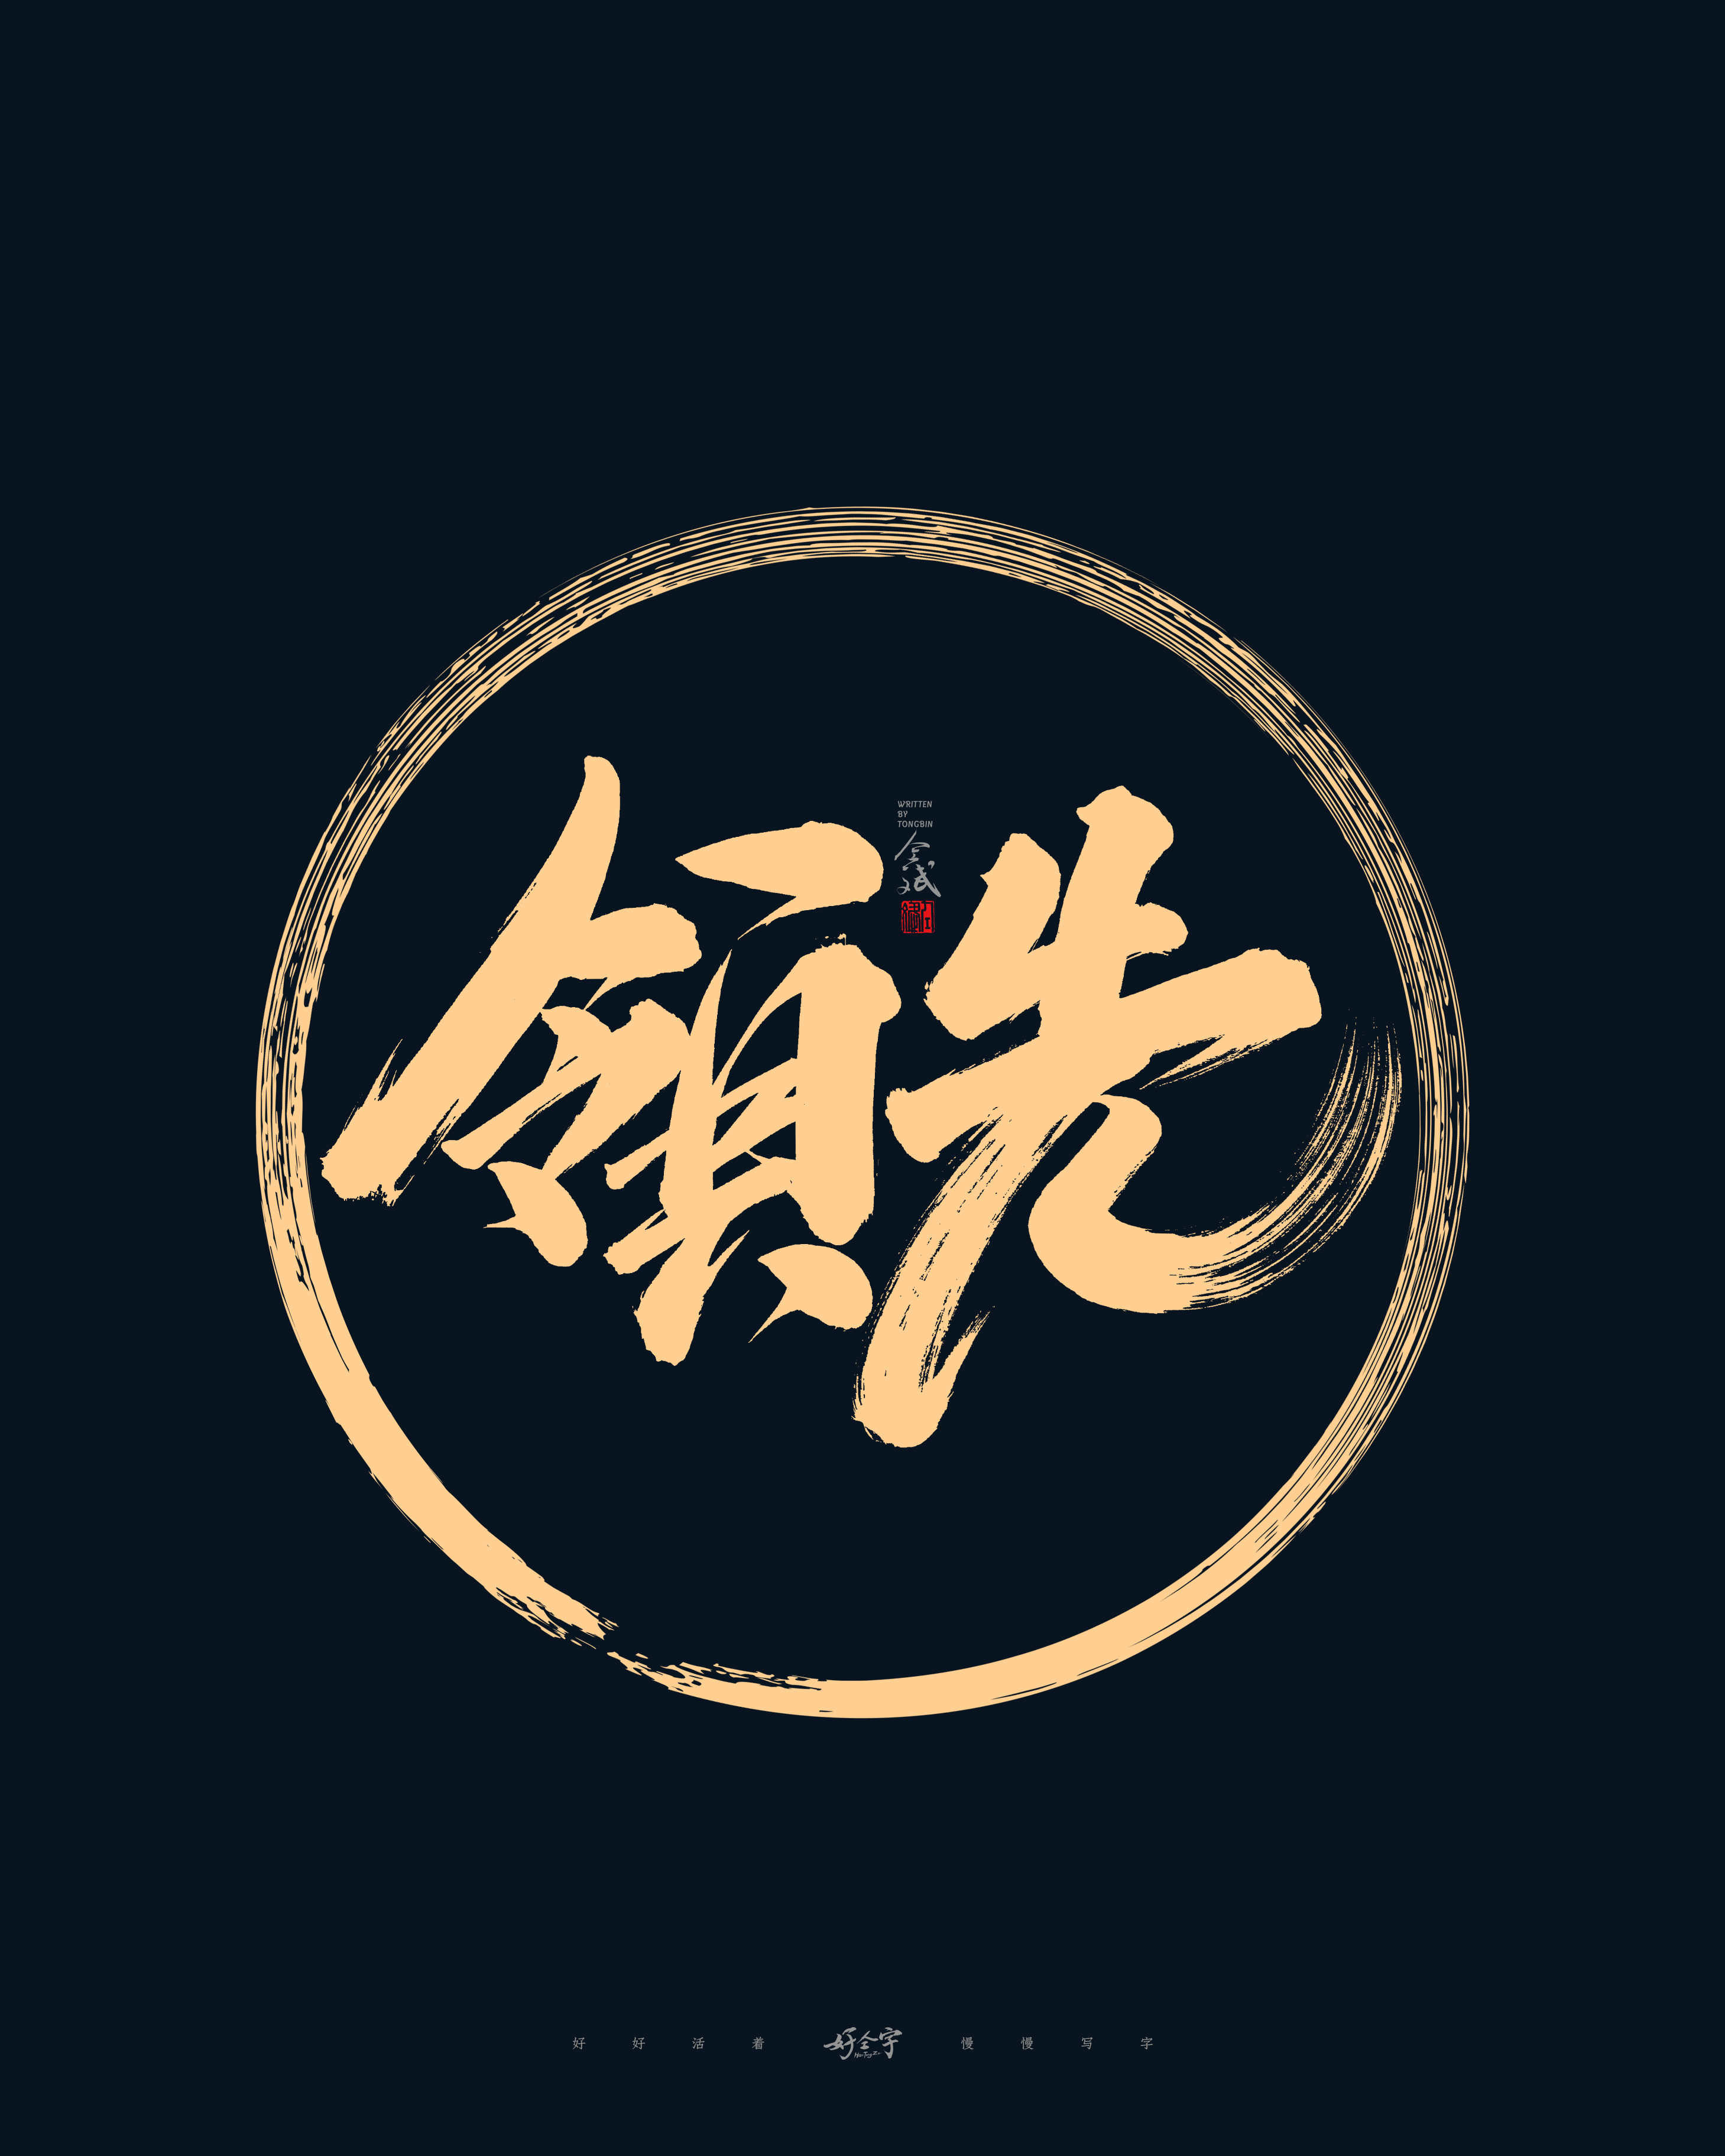 10P Collection of the latest Chinese font design schemes in 2021 #.176